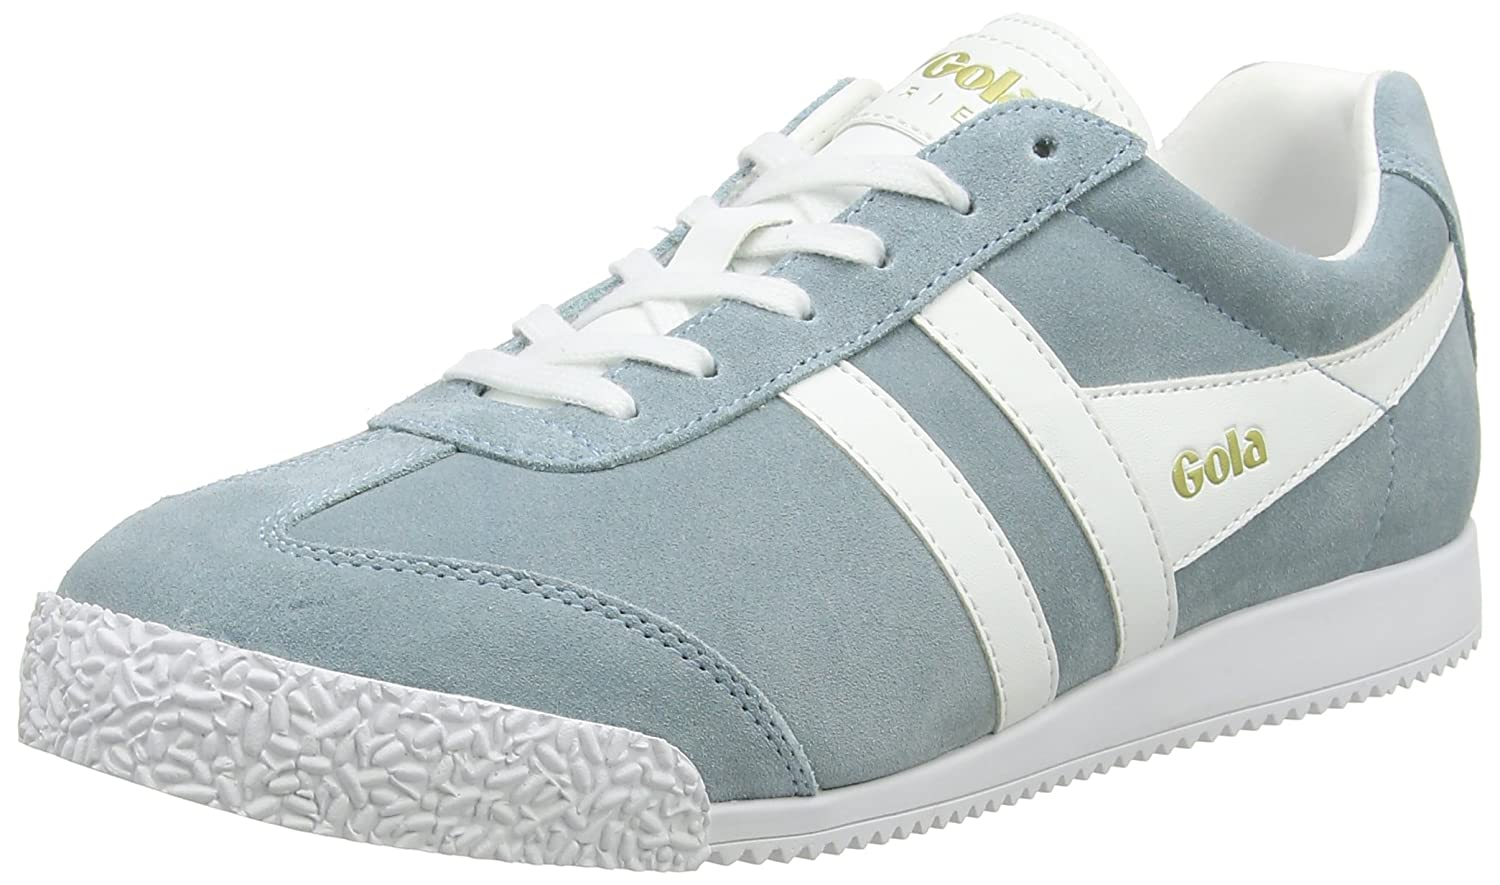 Gola Women's Cla192 Harrier Fashion Sneaker B01M7UD9II 9 B(M) US|Sky Blue/White